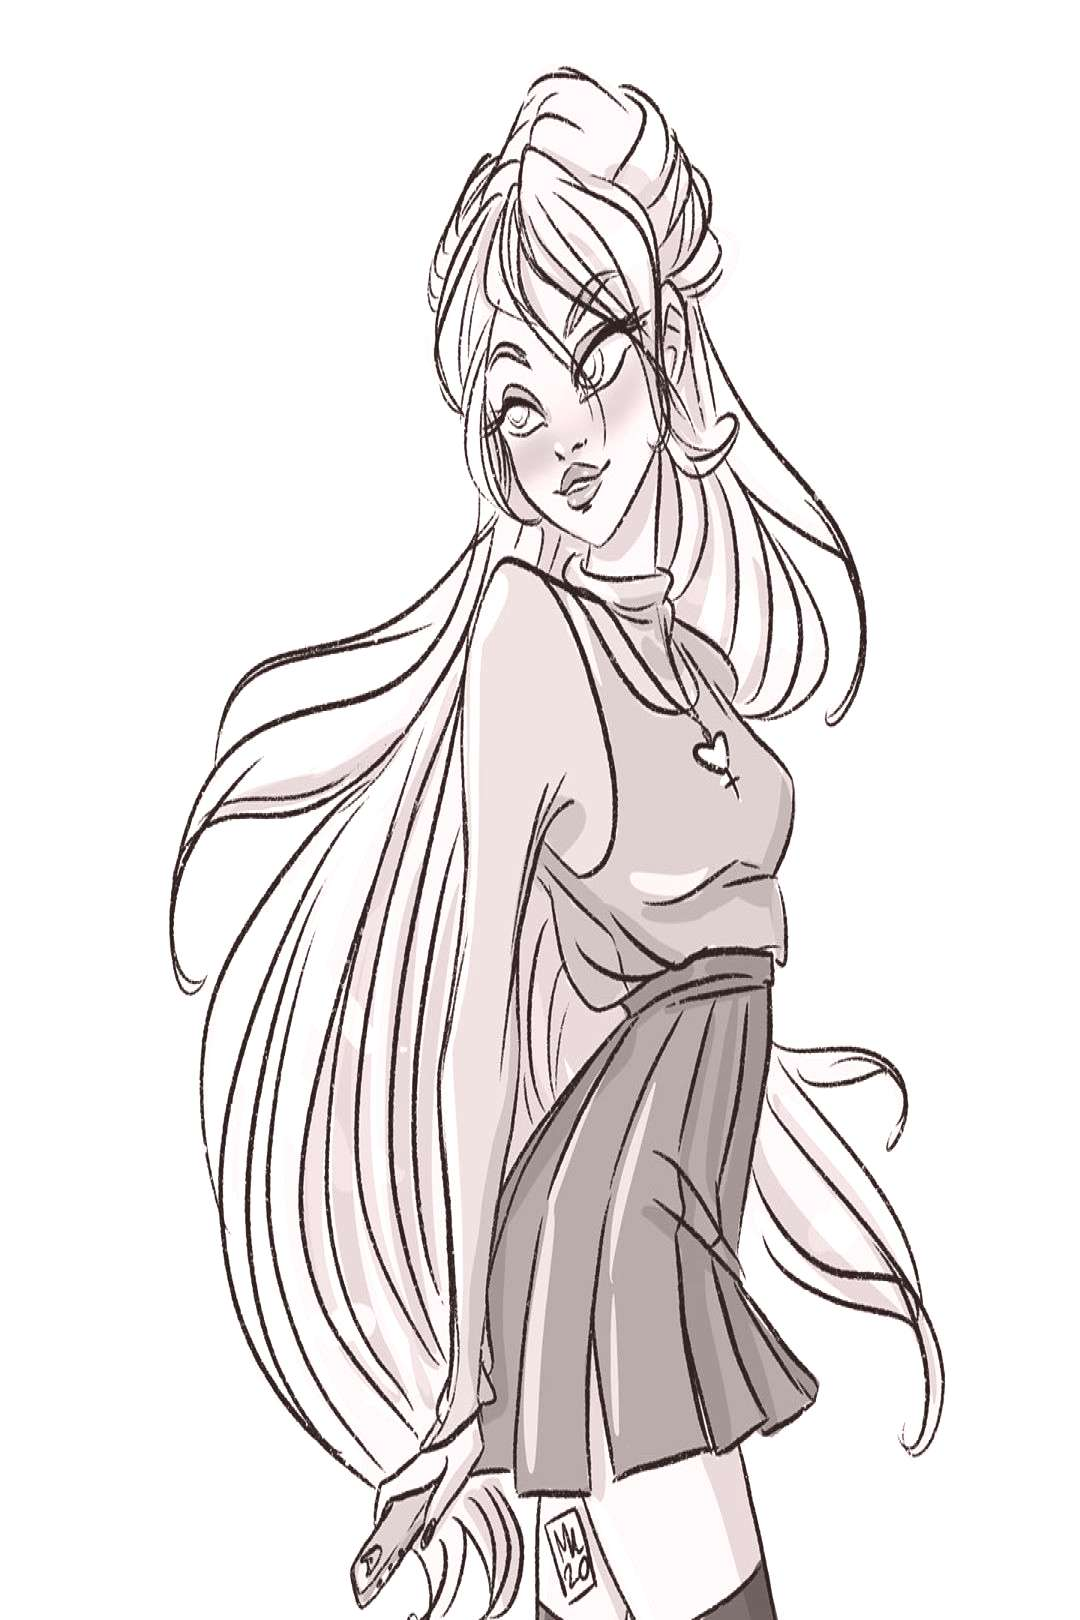 Hey it's Friday so here's a quick and cute Sailor Venus because (